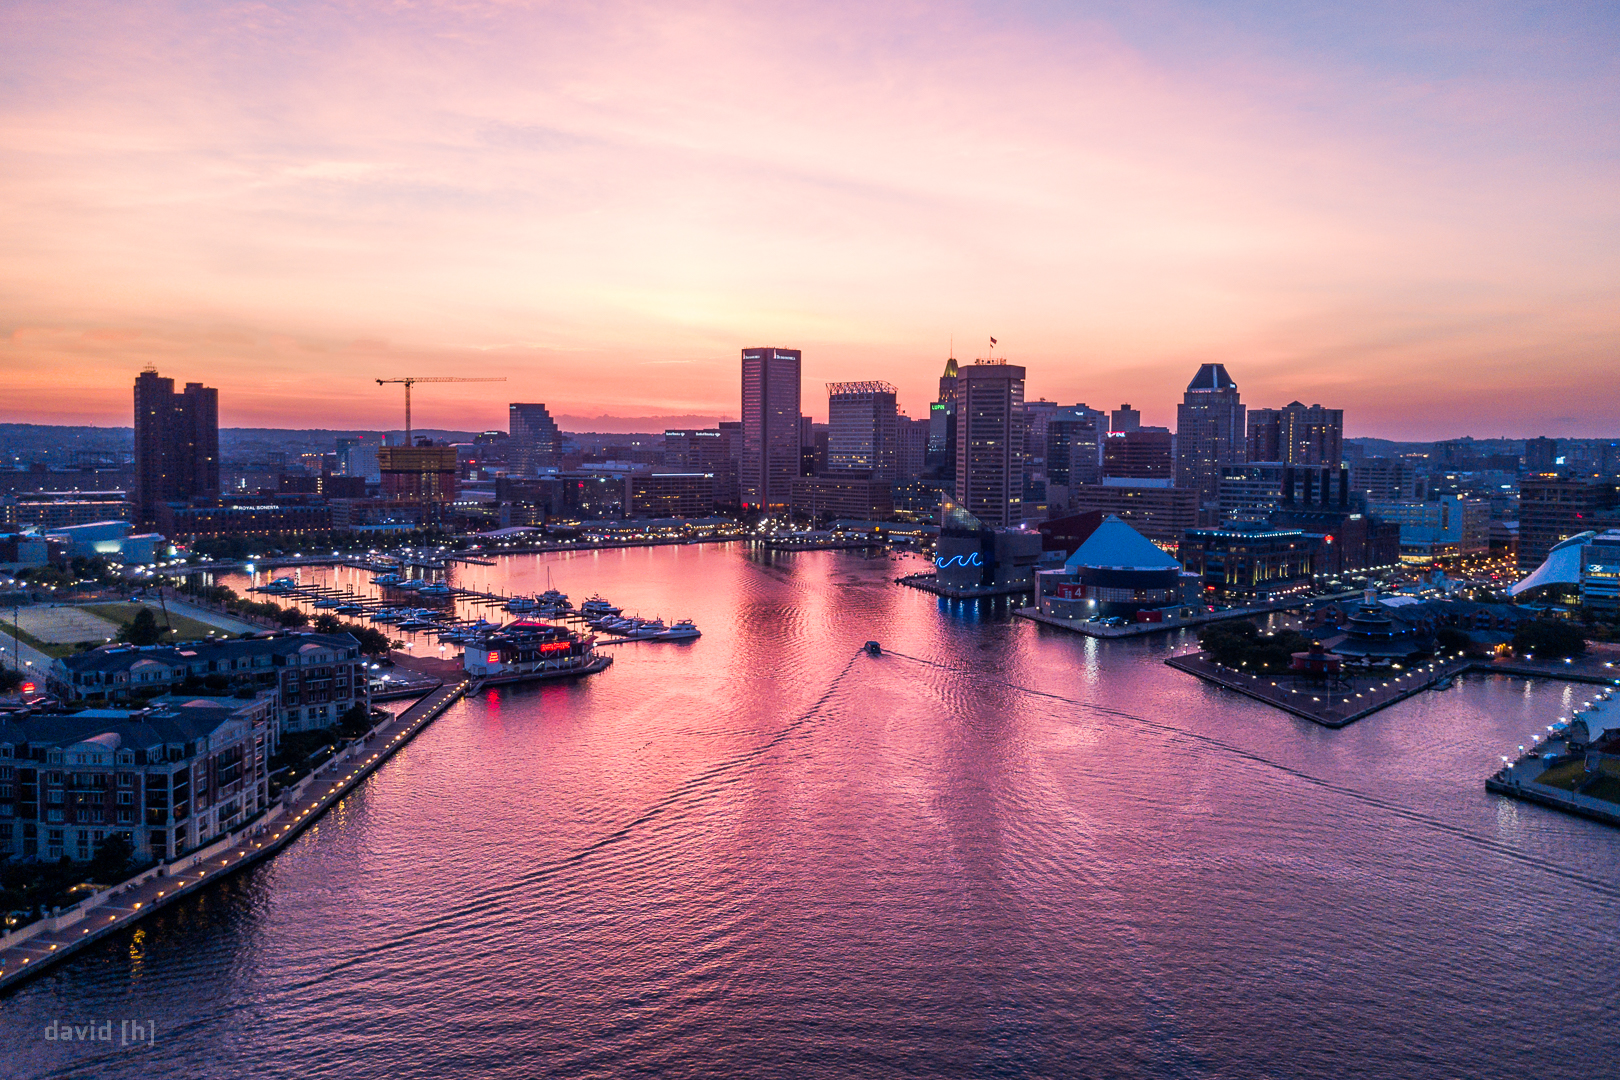 A boat returning during the incredible post-sunset show the sky was putting on over Baltimore.